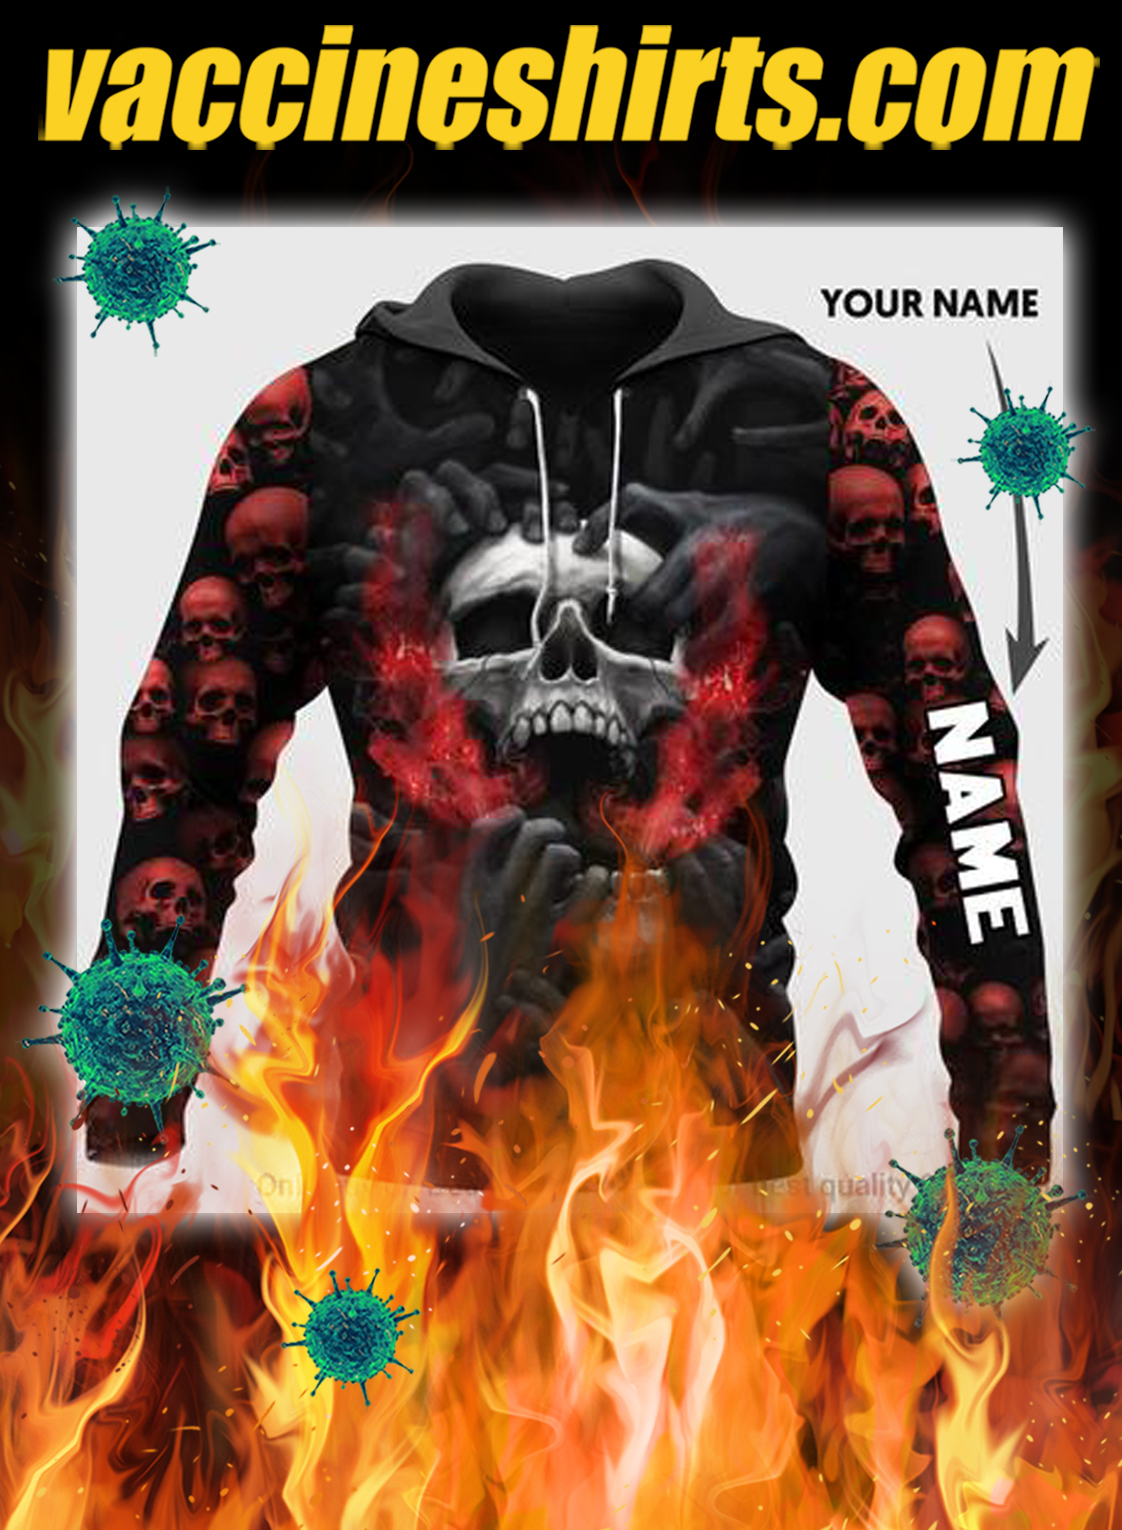 Red head skull screaming personalized custom name 3d hoodie- pic 1